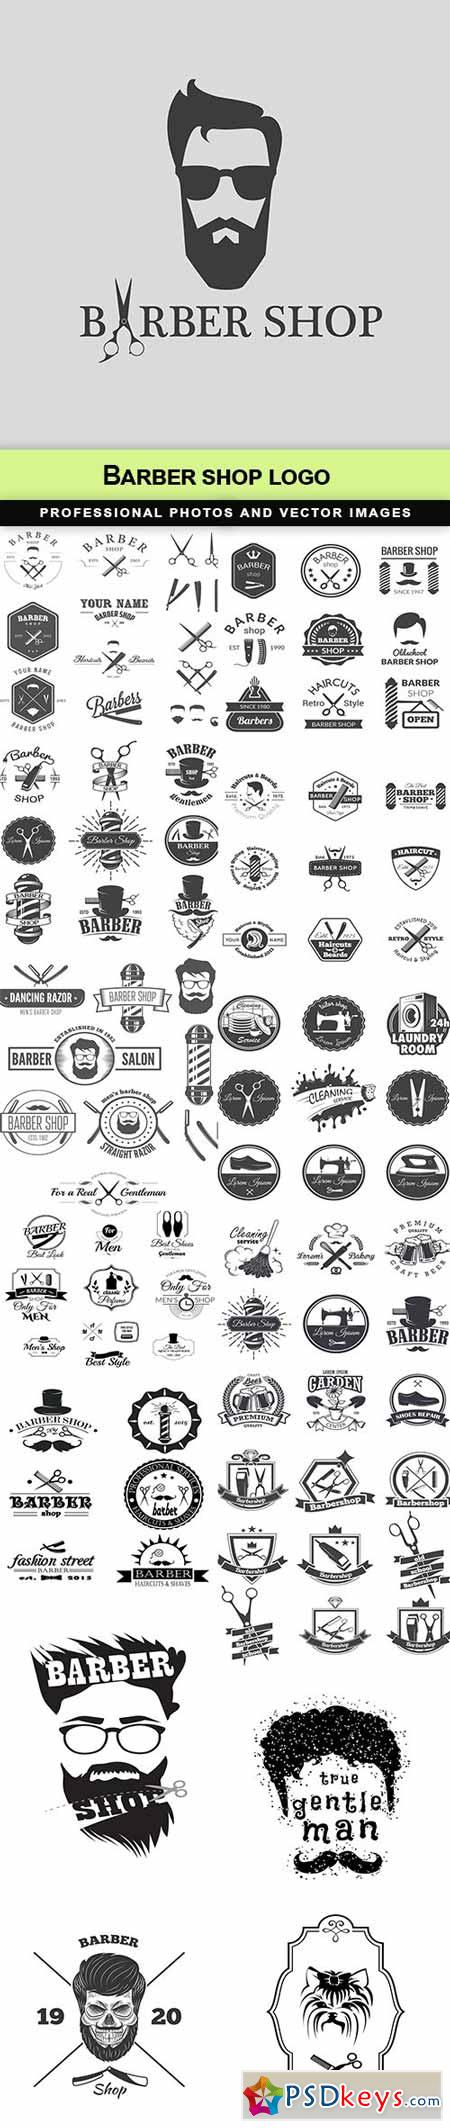 Barber shop logo - 15 EPS